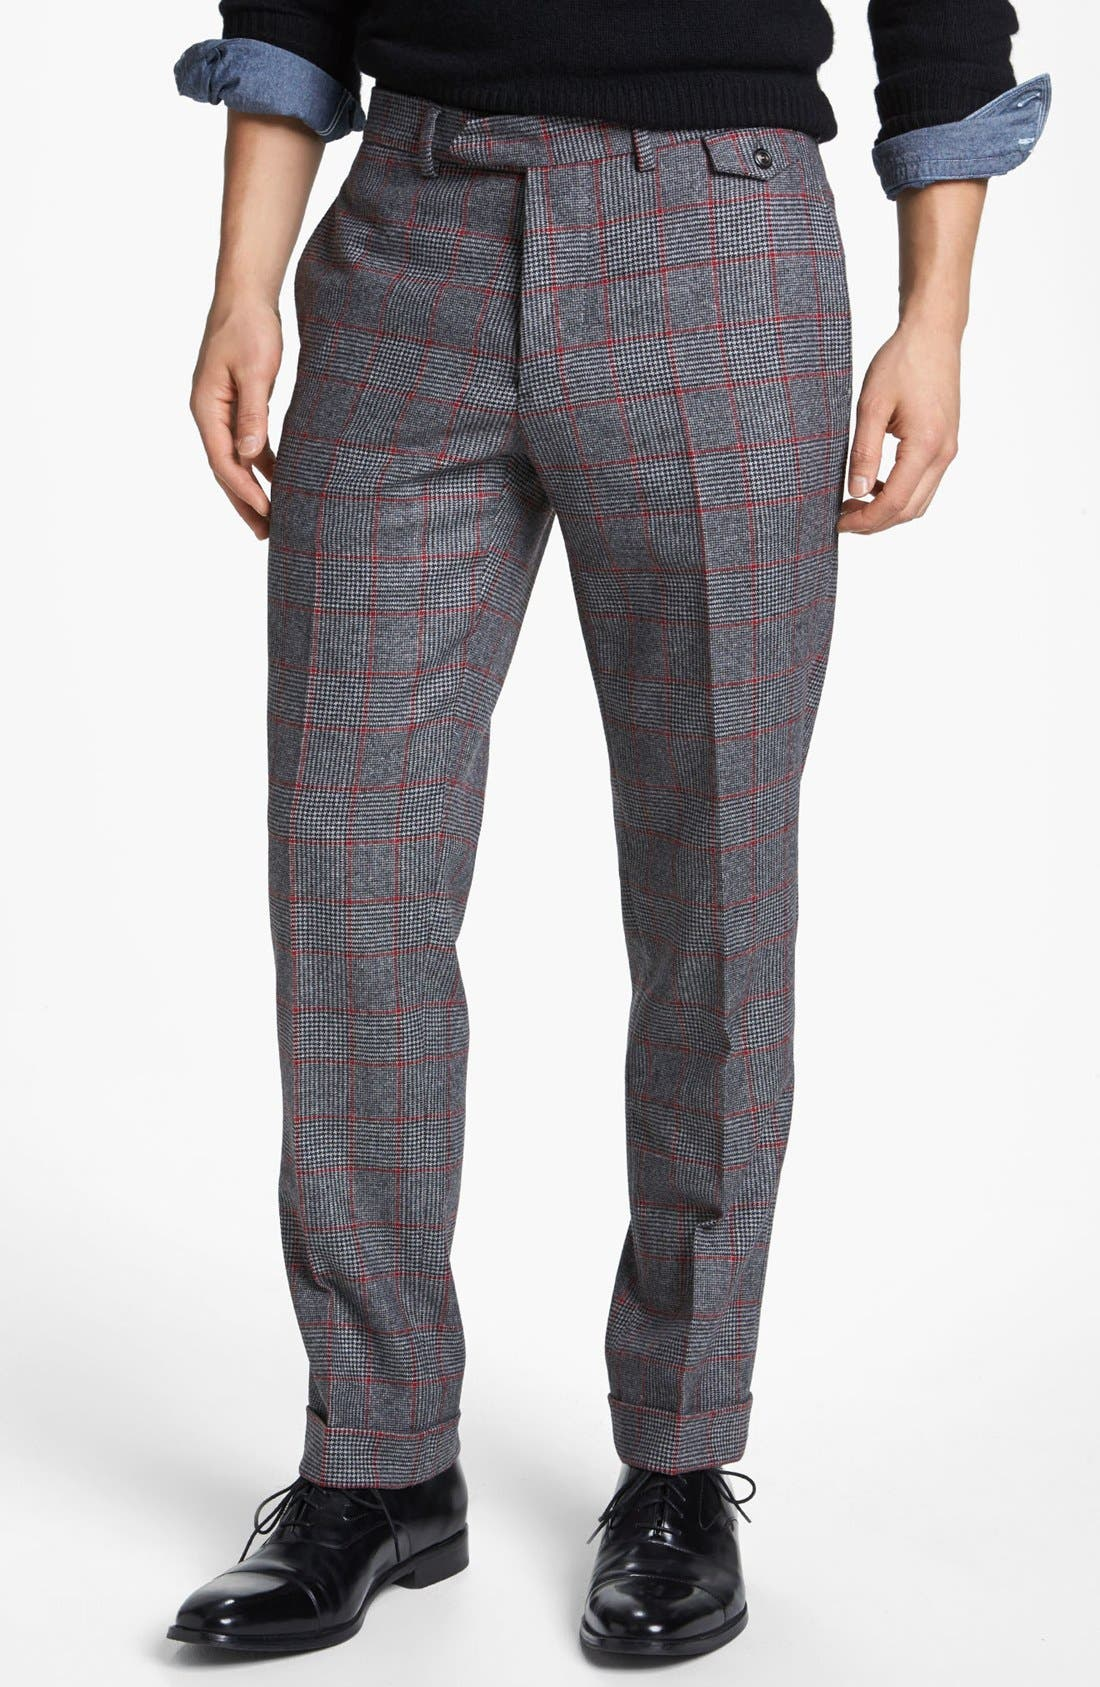 MICHAEL BASTIAN, Skinny Fit Glen Plaid Pants, Main thumbnail 1, color, 023